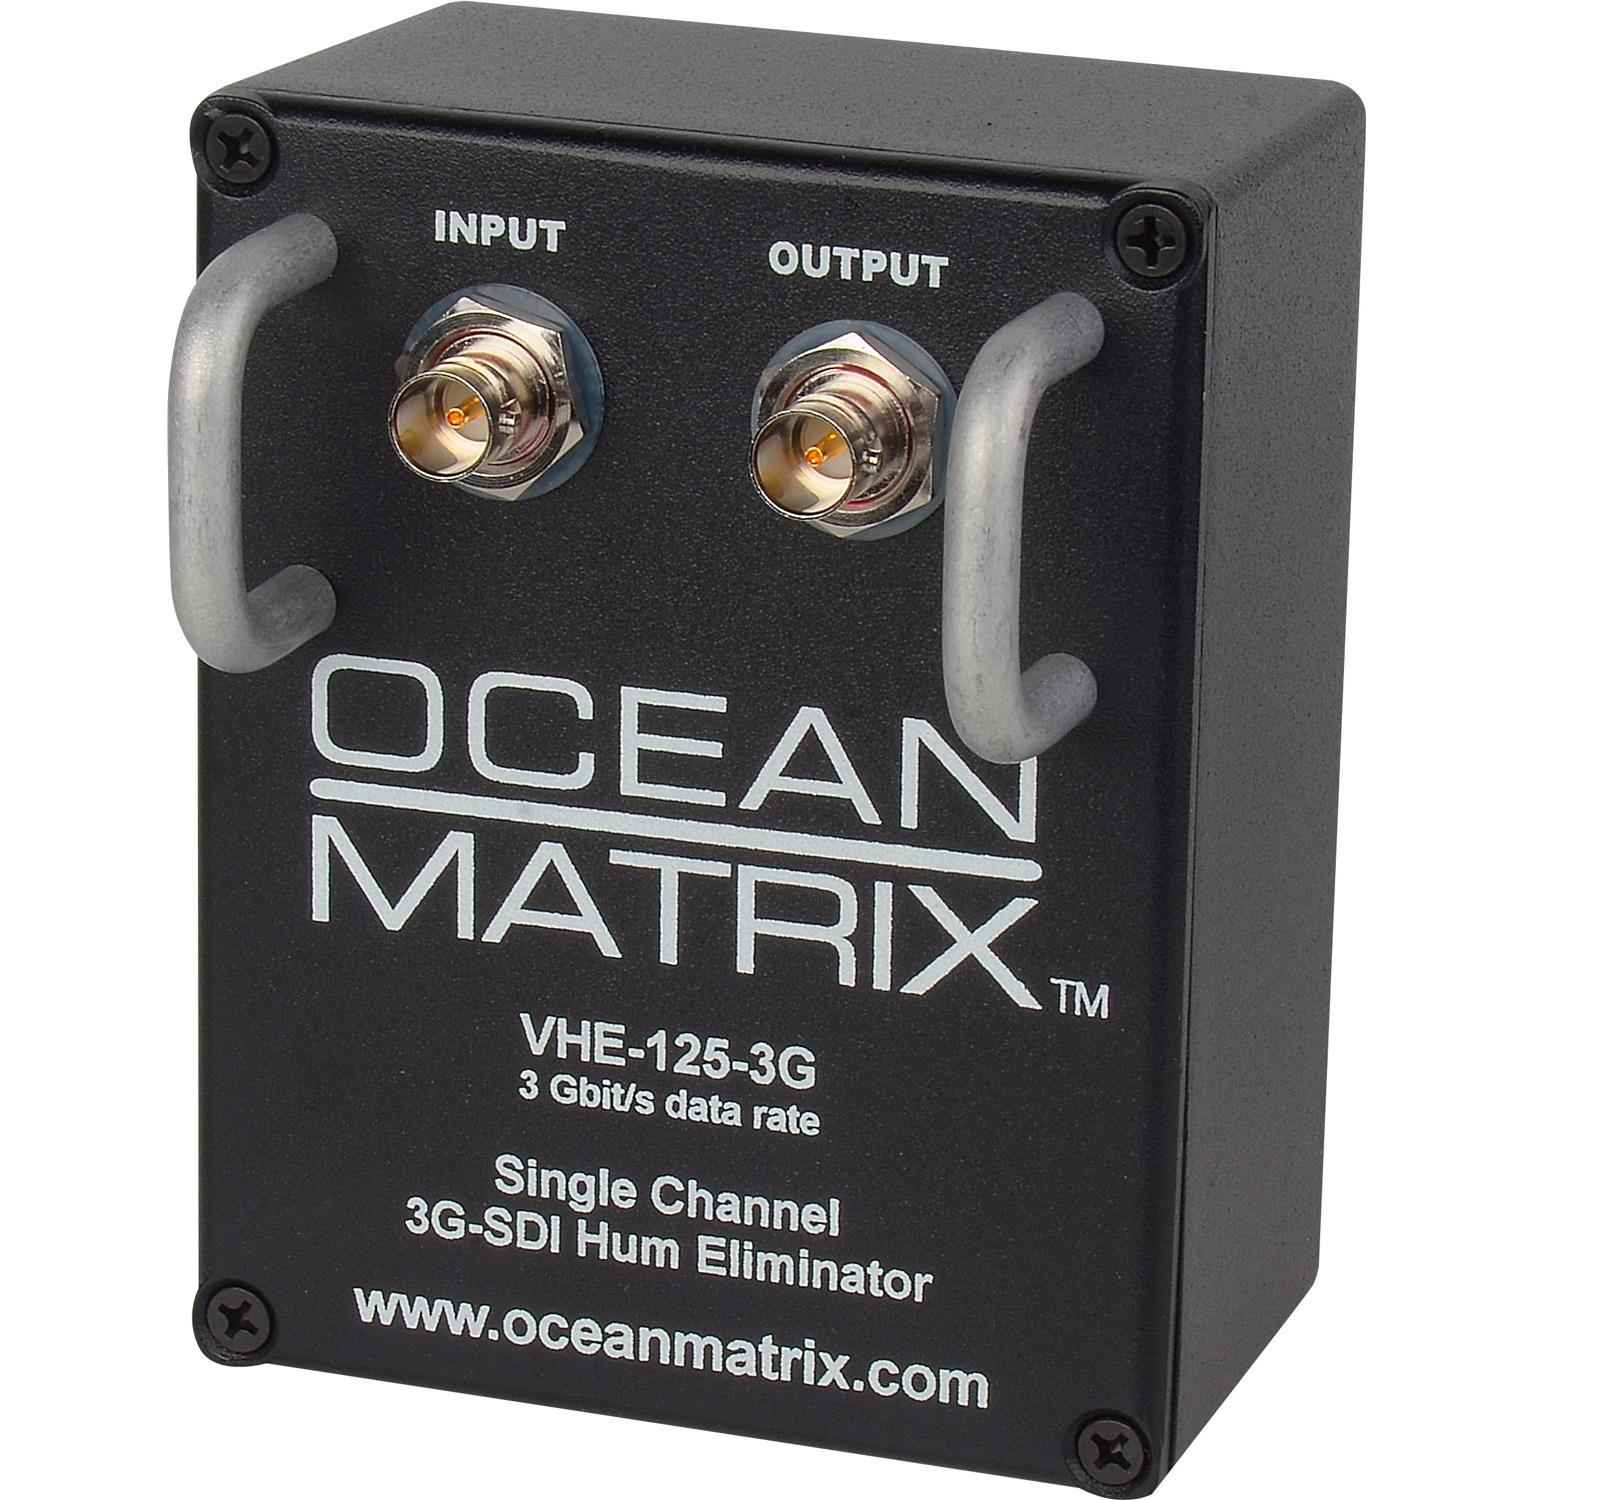 VHE-125-3G 3G-HD-SDI/SDI 1-Channel Video Hum Eliminator w/Handles by Ocean Matrix